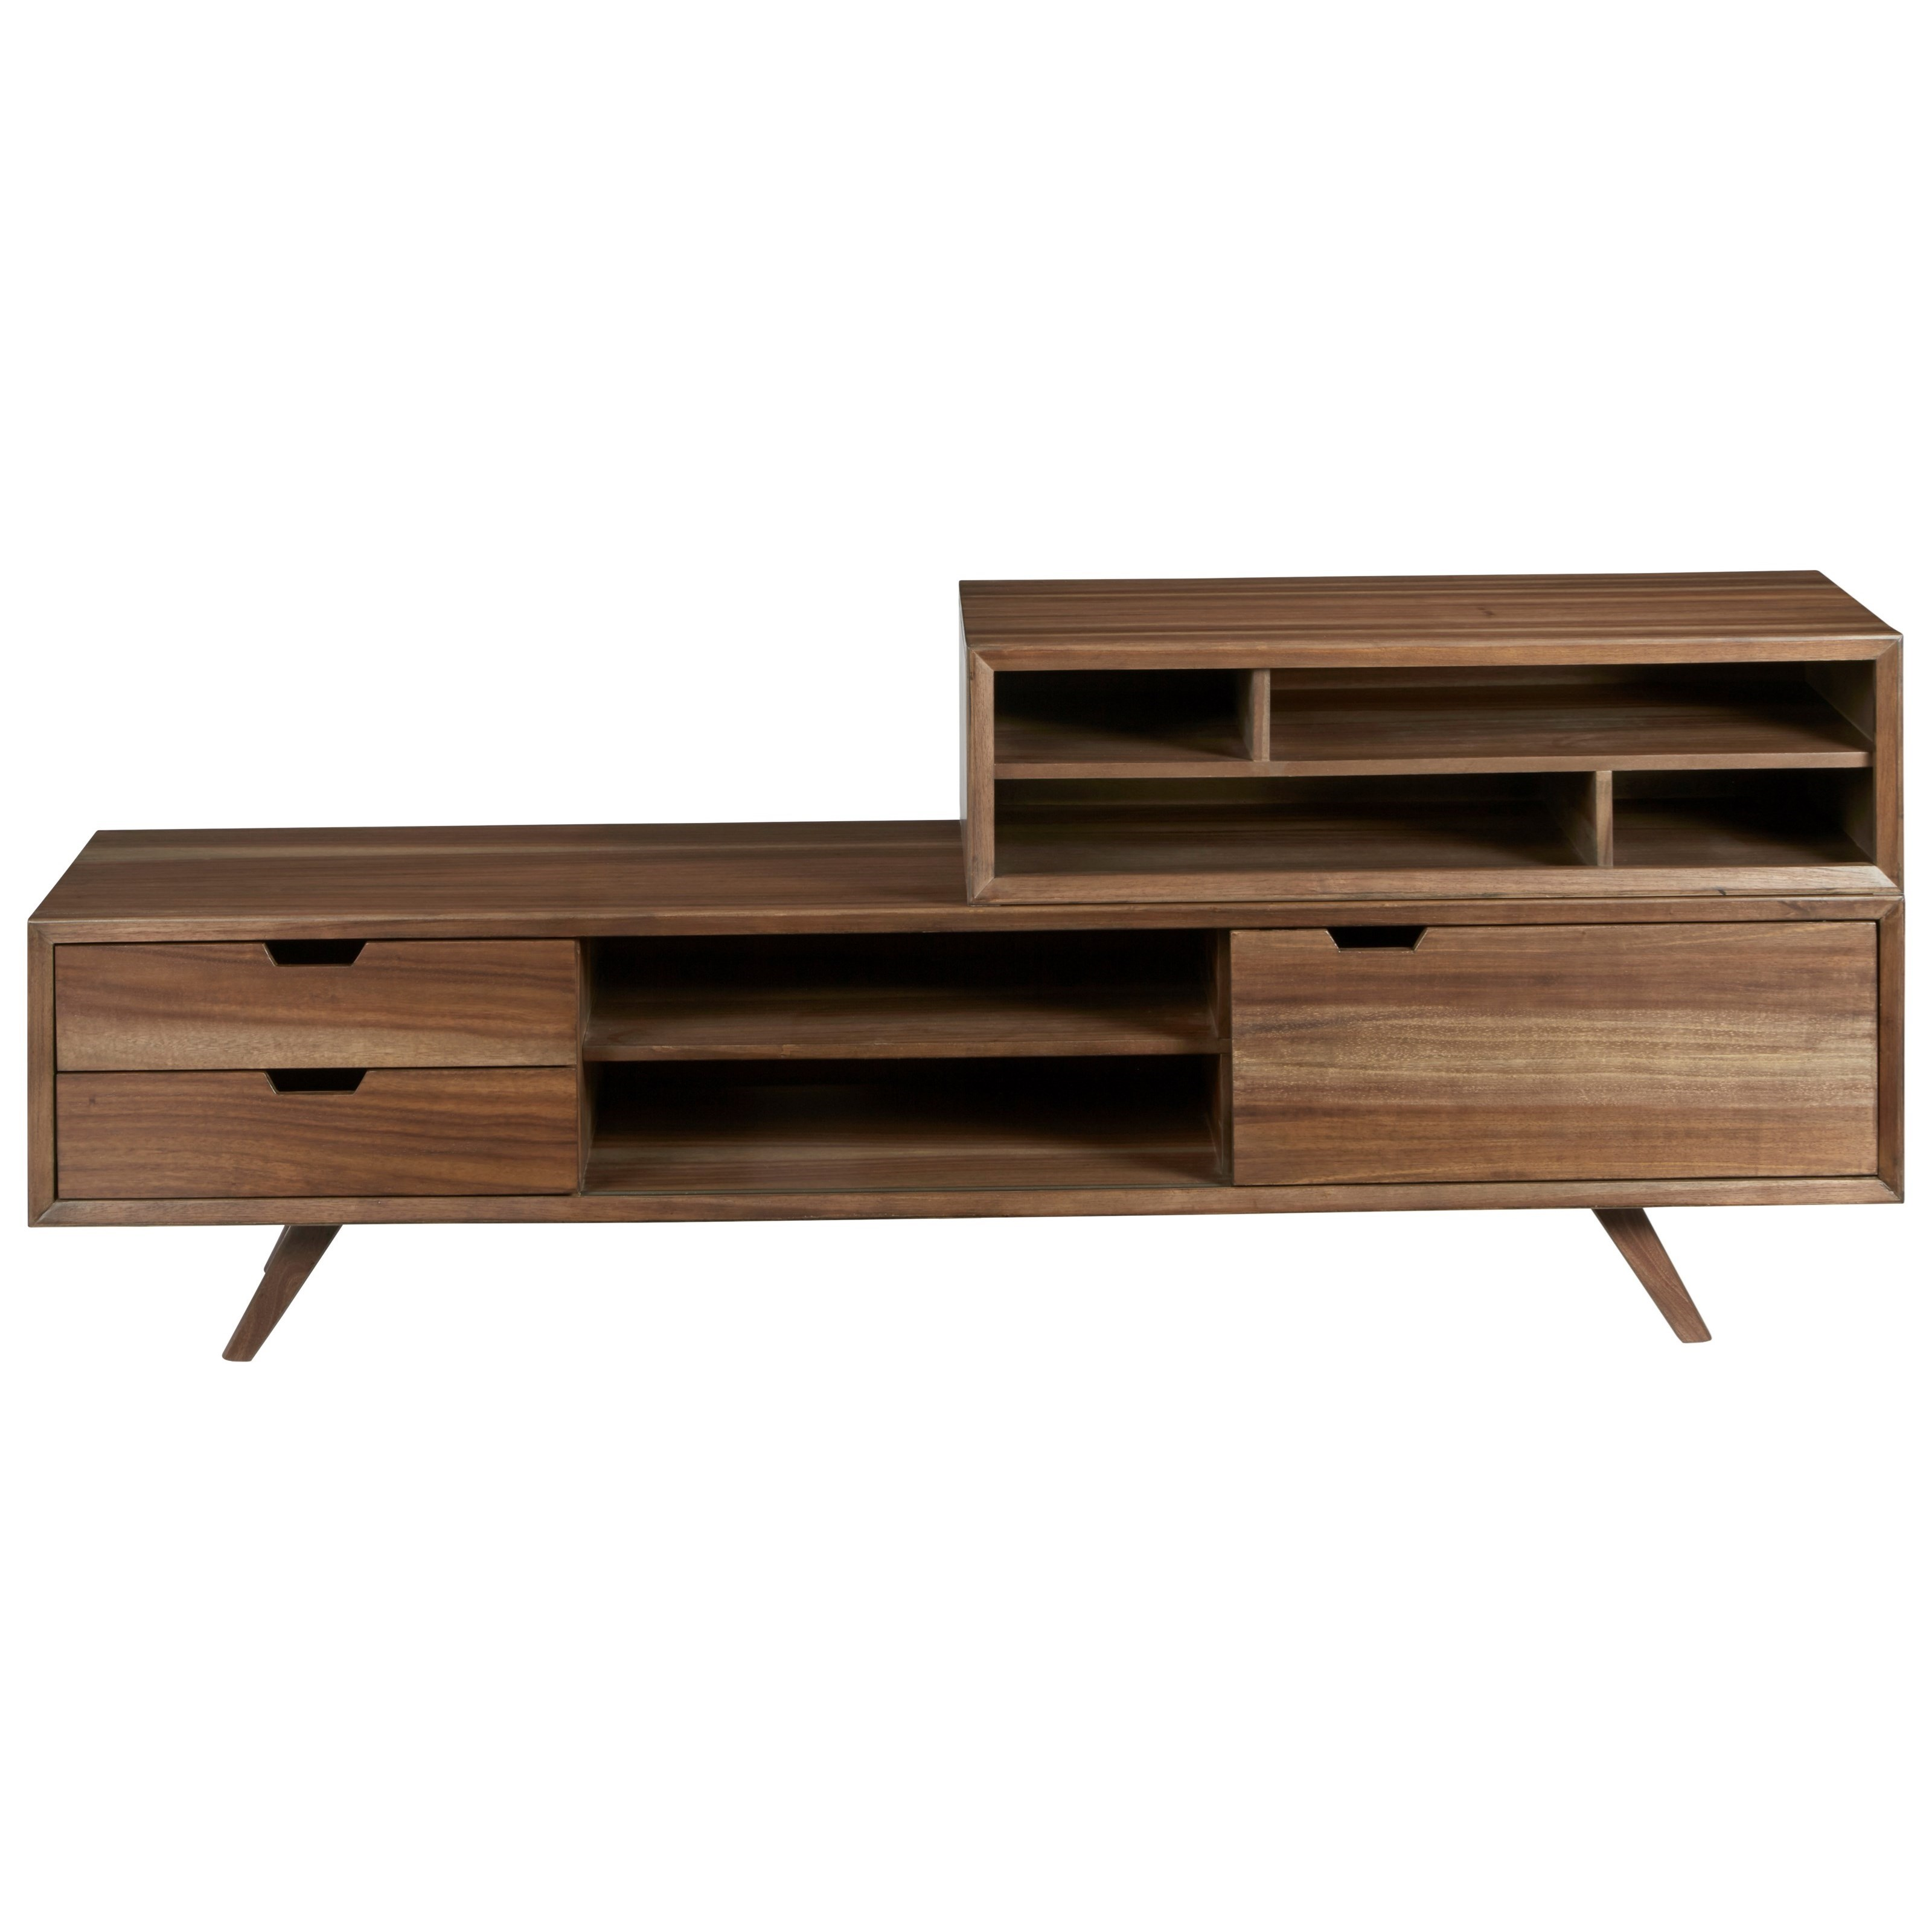 Bungalow Sofa Console Table by Progressive Furniture at Simply Home by Lindy's